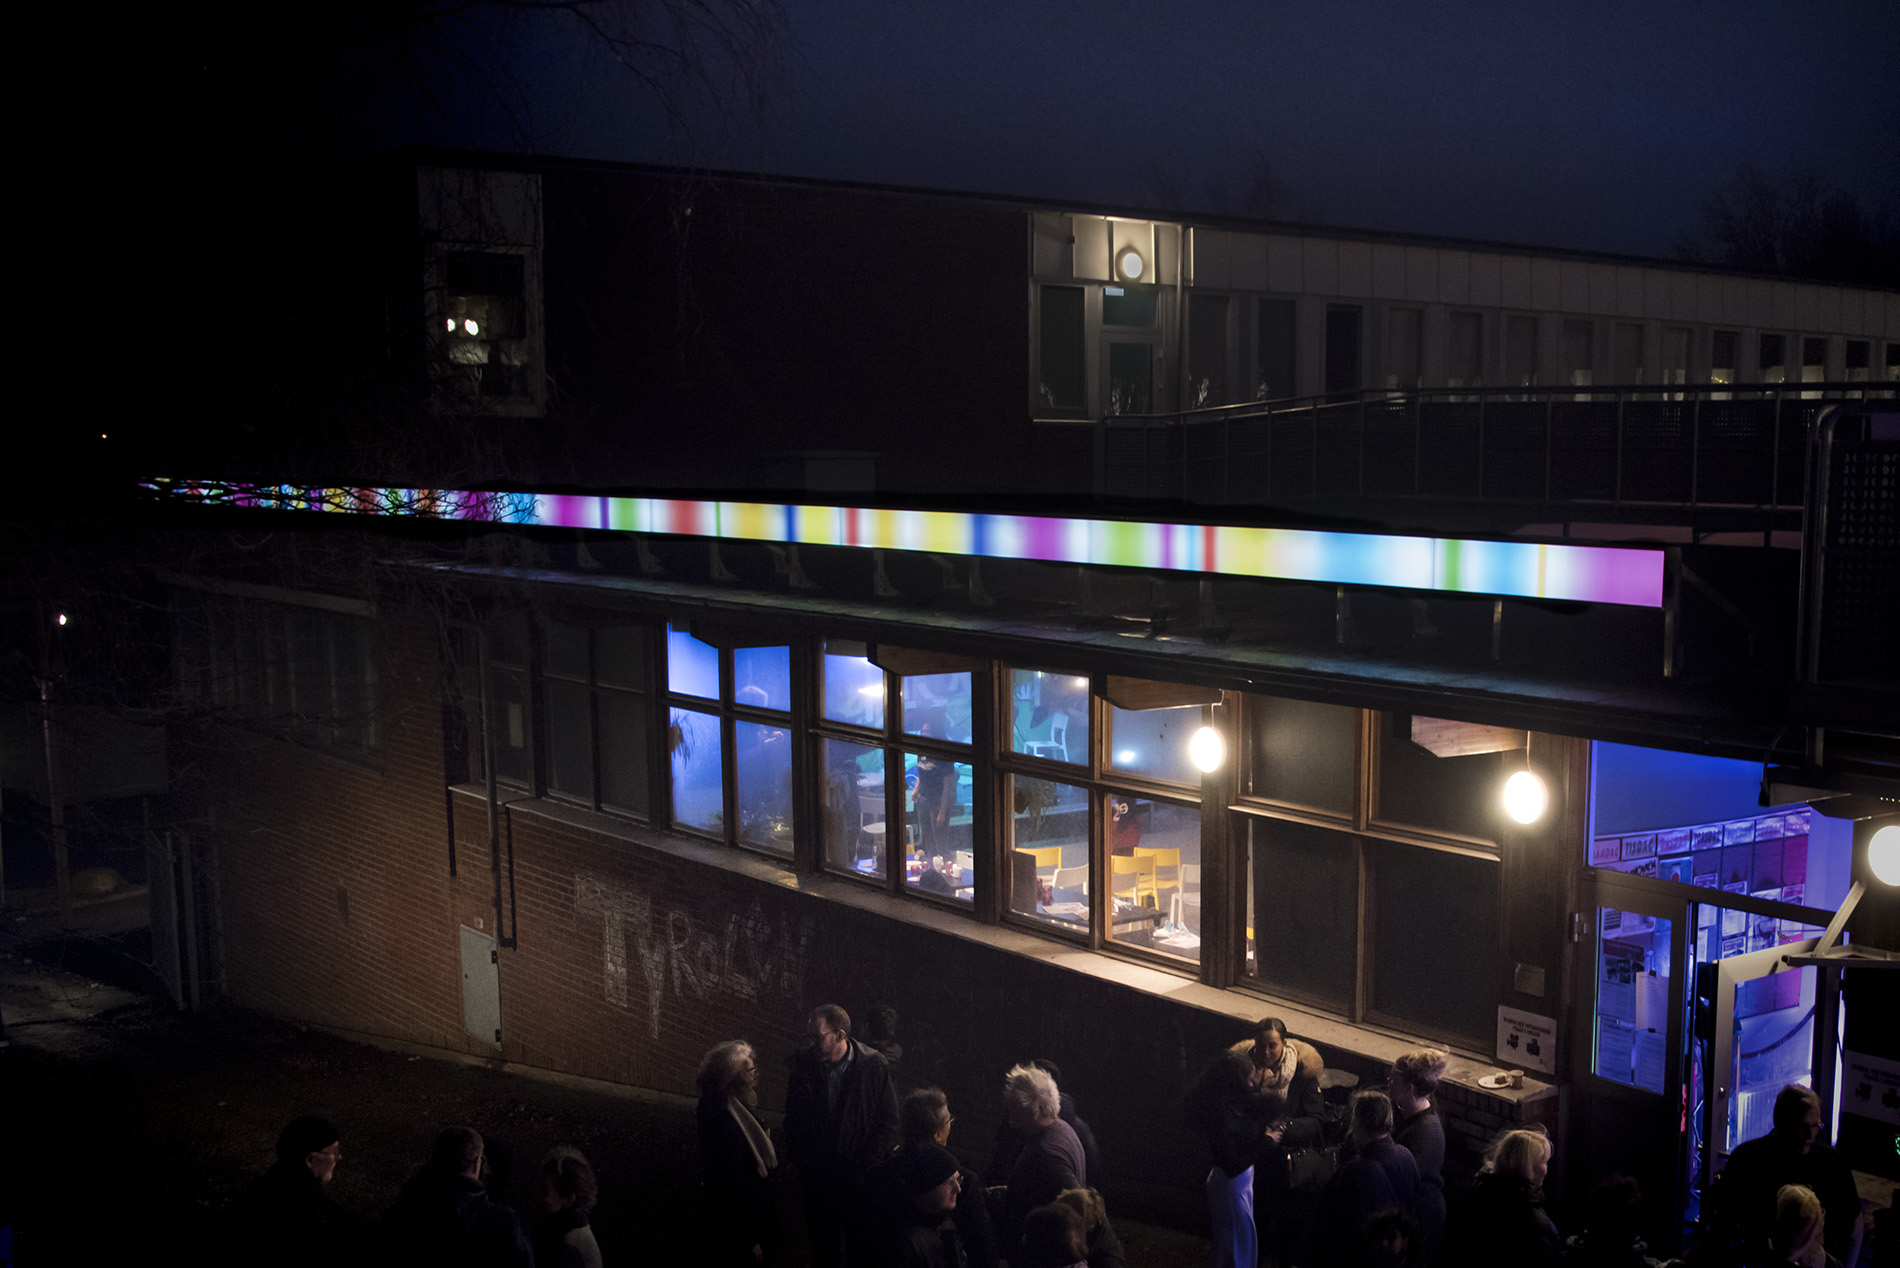 A series of light boxes running across the facade of a brick wall. Shot at night, when the artwork is light.